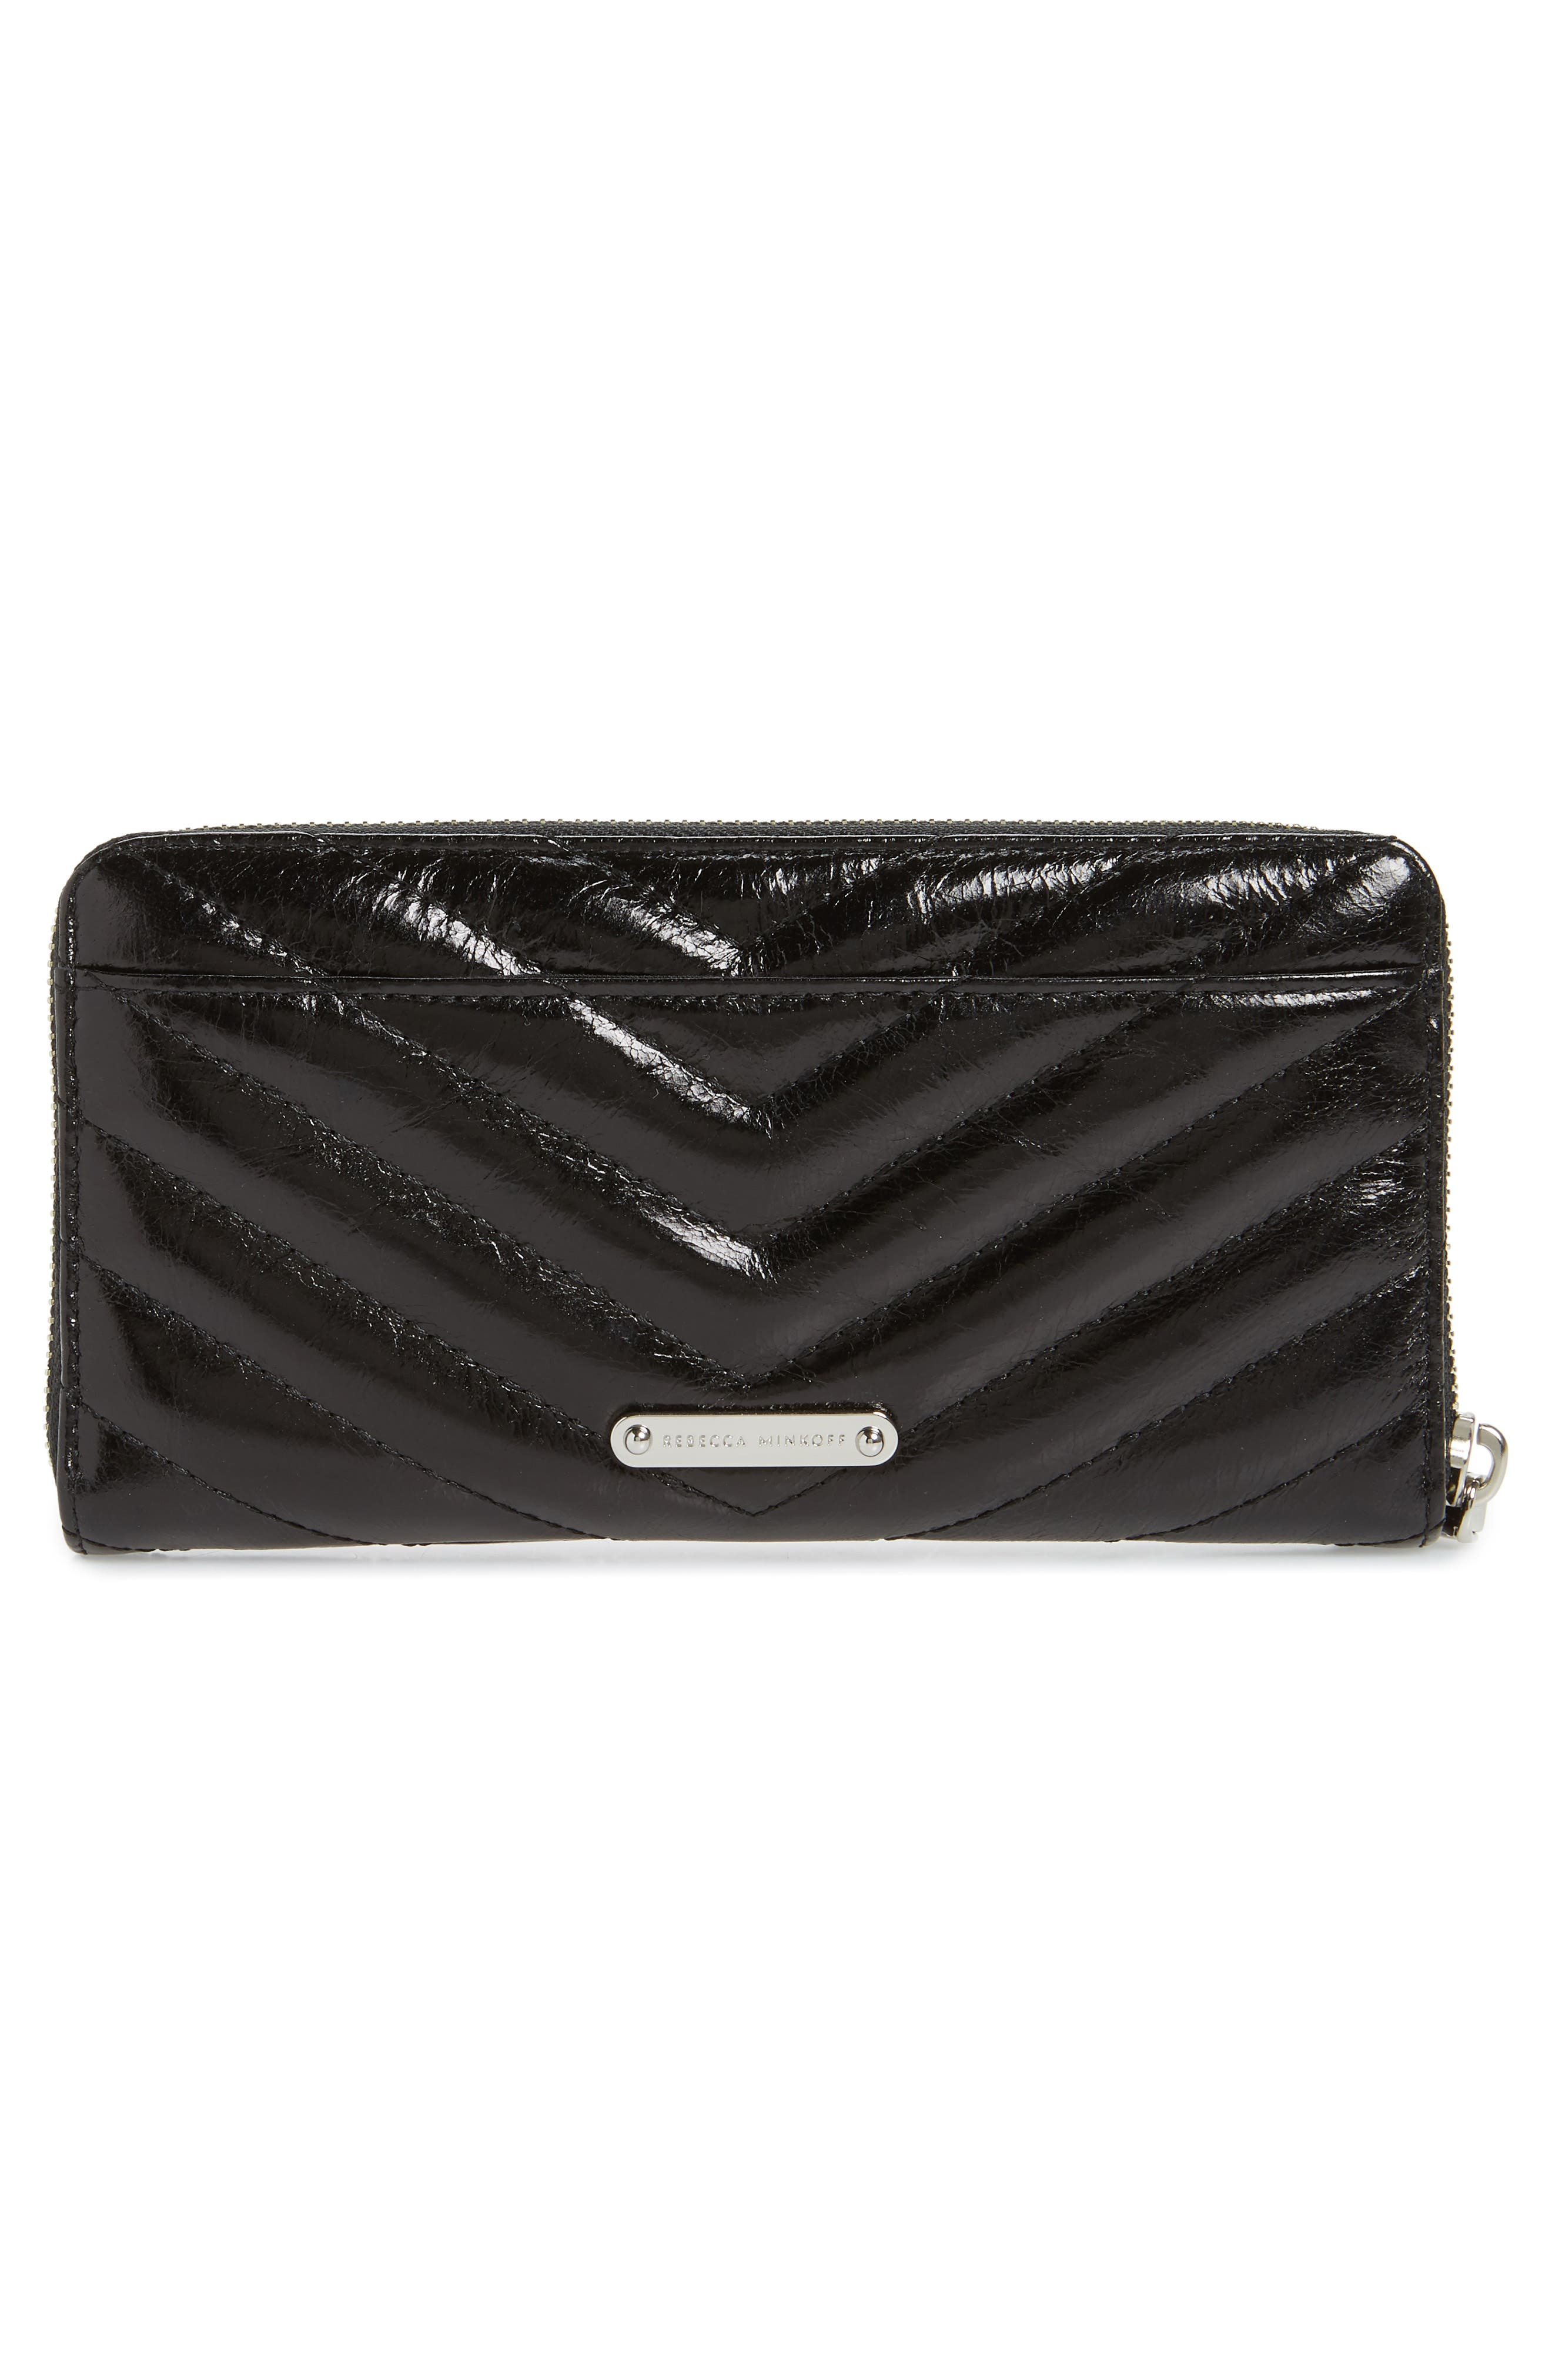 REBECCA MINKOFF, Quilted Wallet, Alternate thumbnail 3, color, BLACK